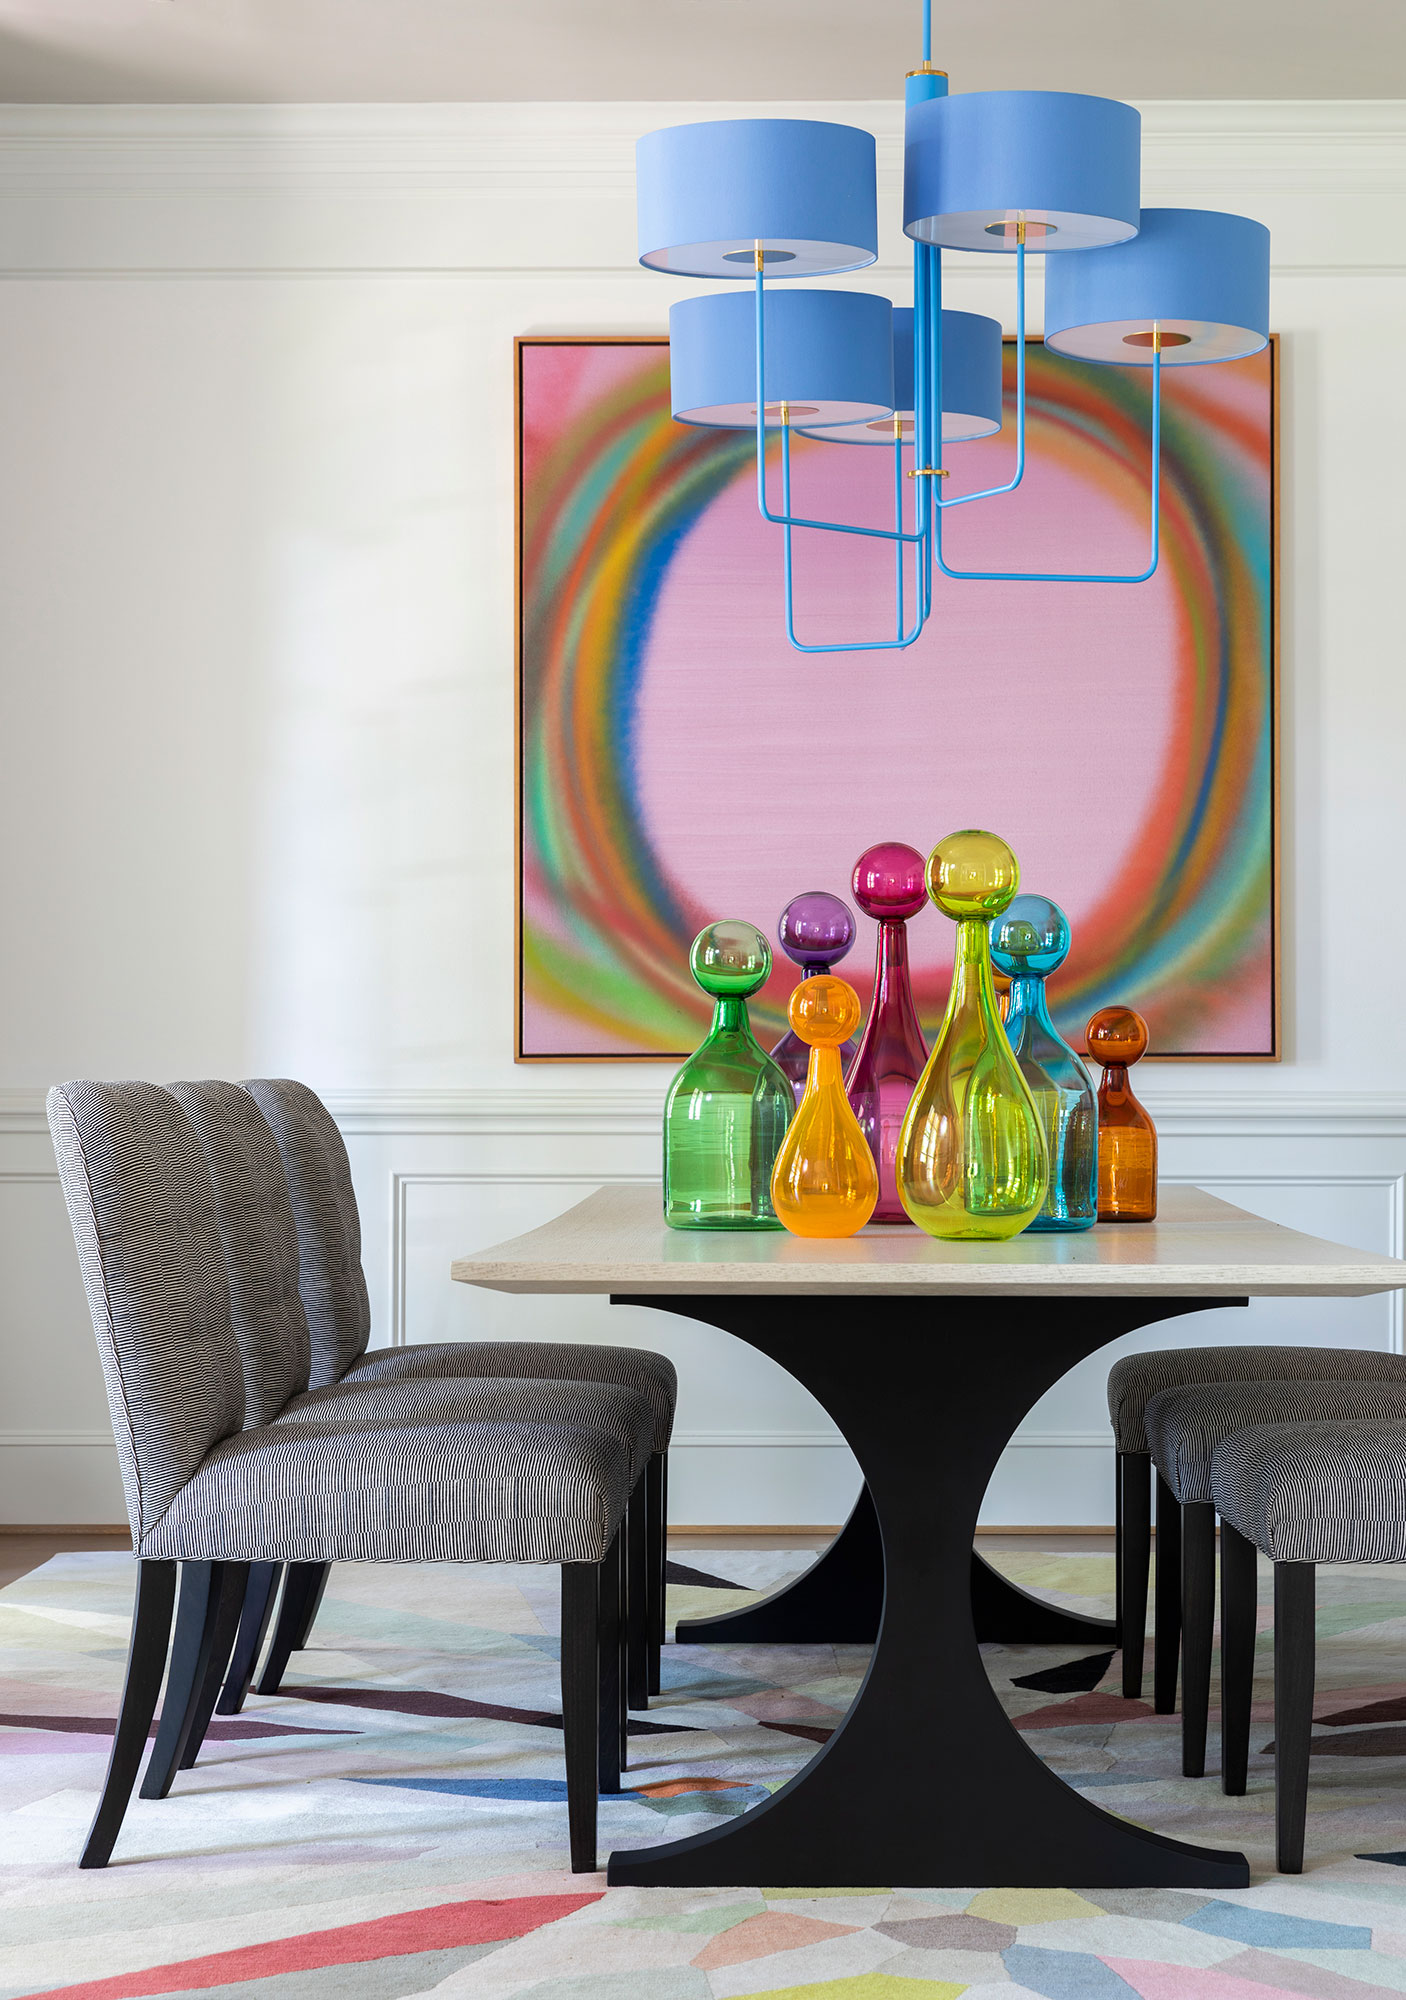 Dining room Interiors Photography - Julie Soefer Photography